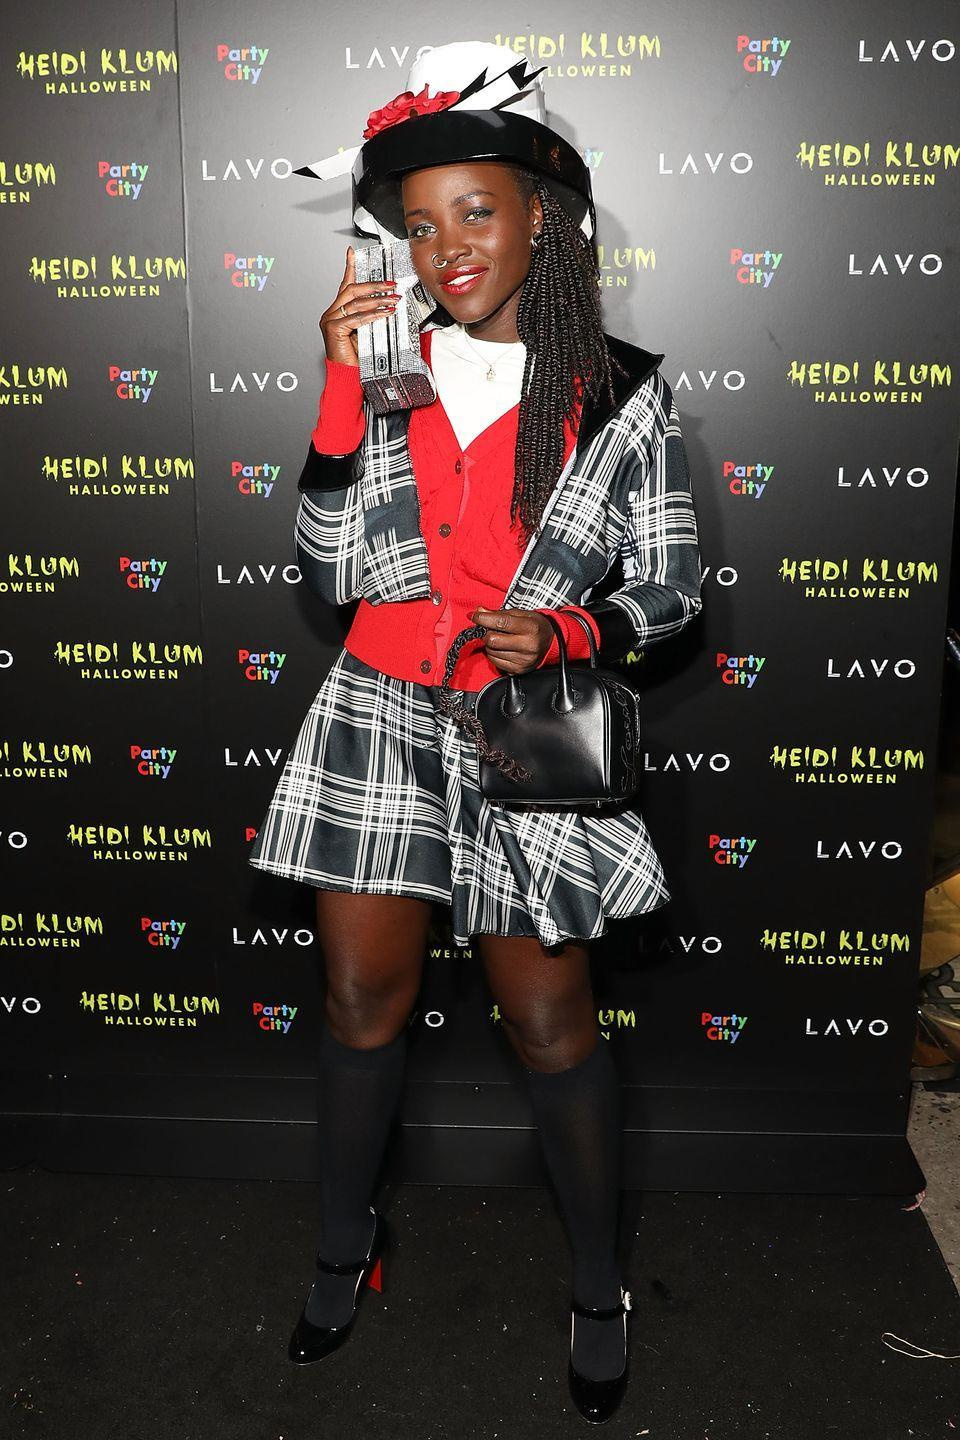 <p>Lupita brought back the nineties when she attended Heidi Klum's 2018 Halloween party as Dionne from Clueless.</p>